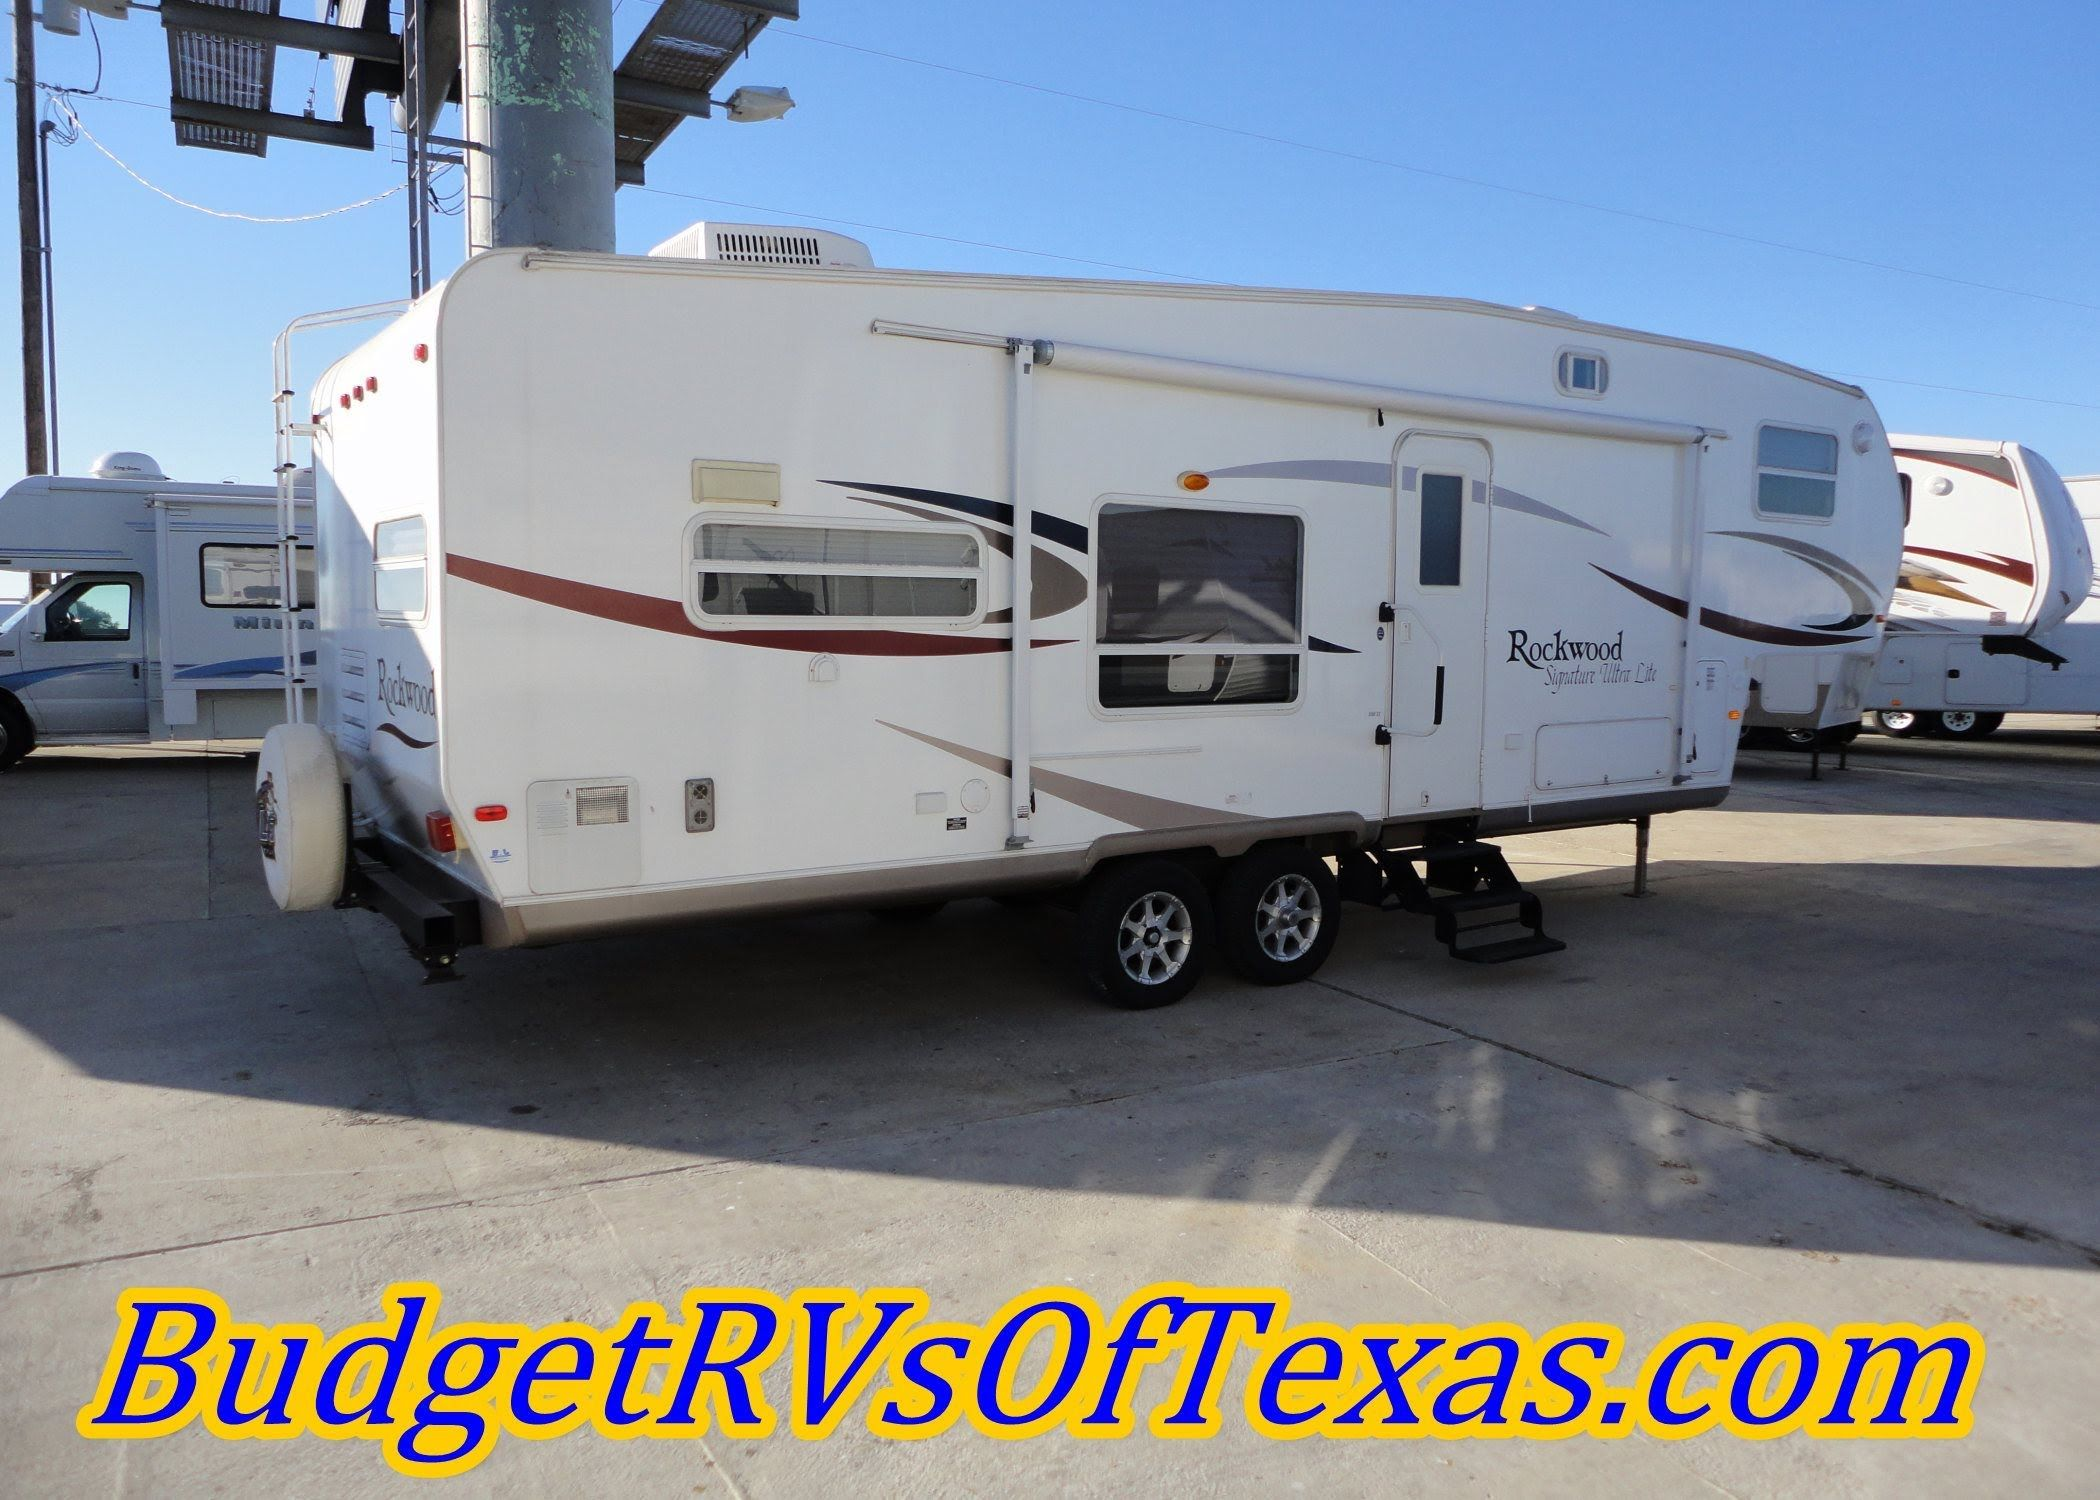 Pin On Youtube Videos Of Exciting Rvs